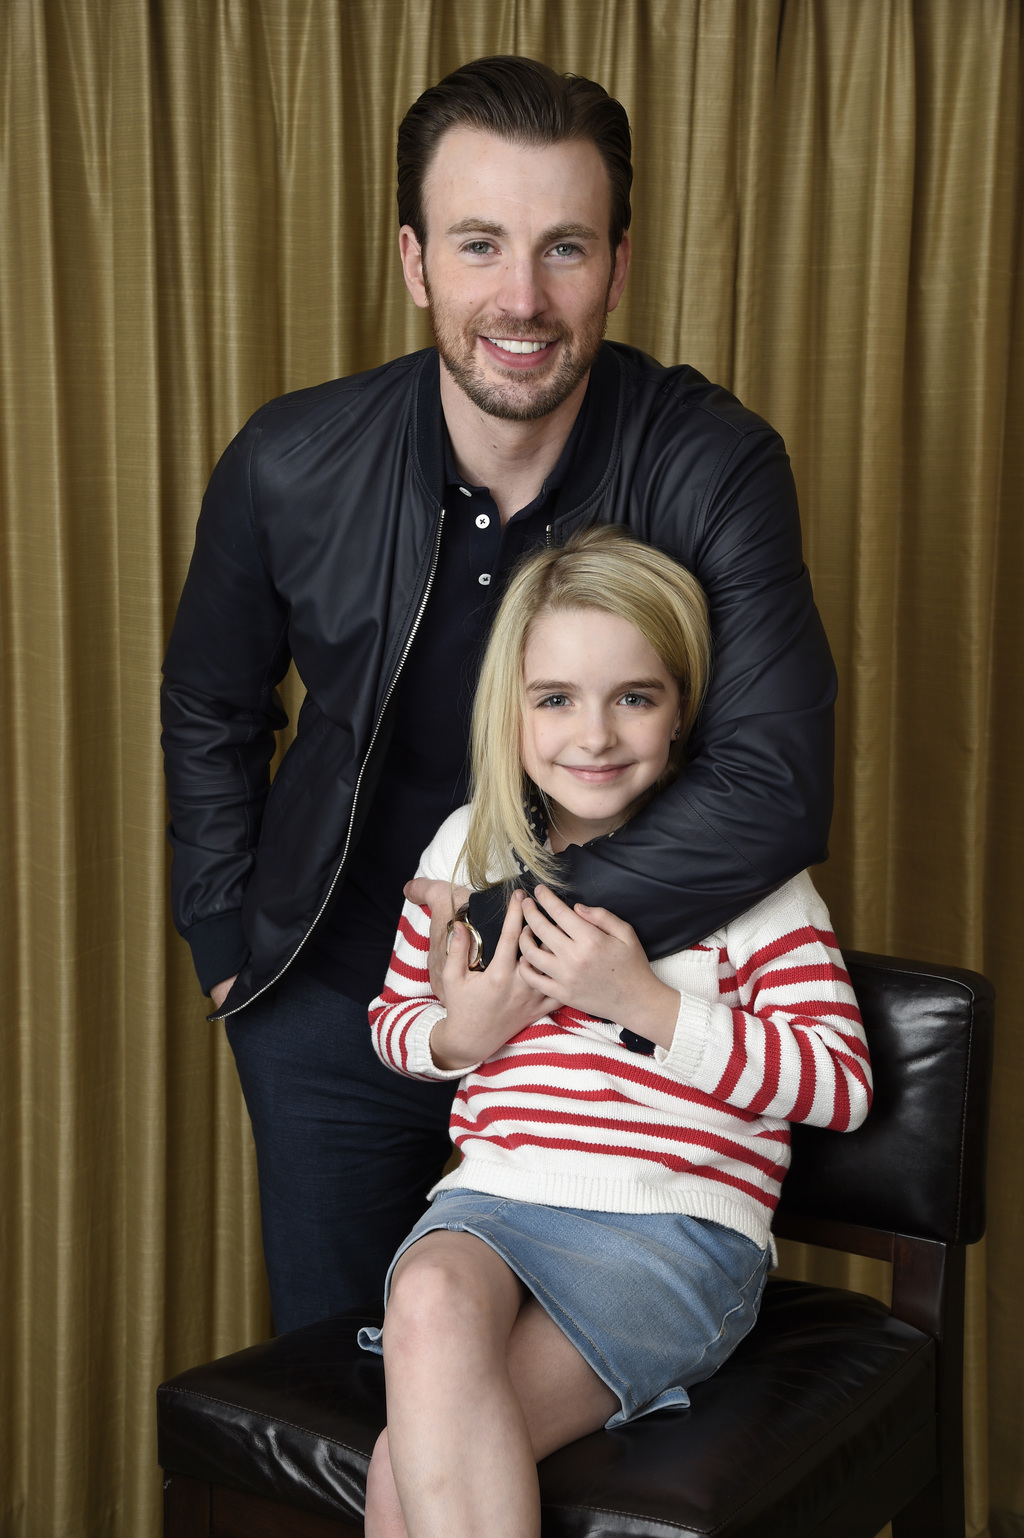 'Gifted' unites Chris Evans with a new young ... | Taiwan News